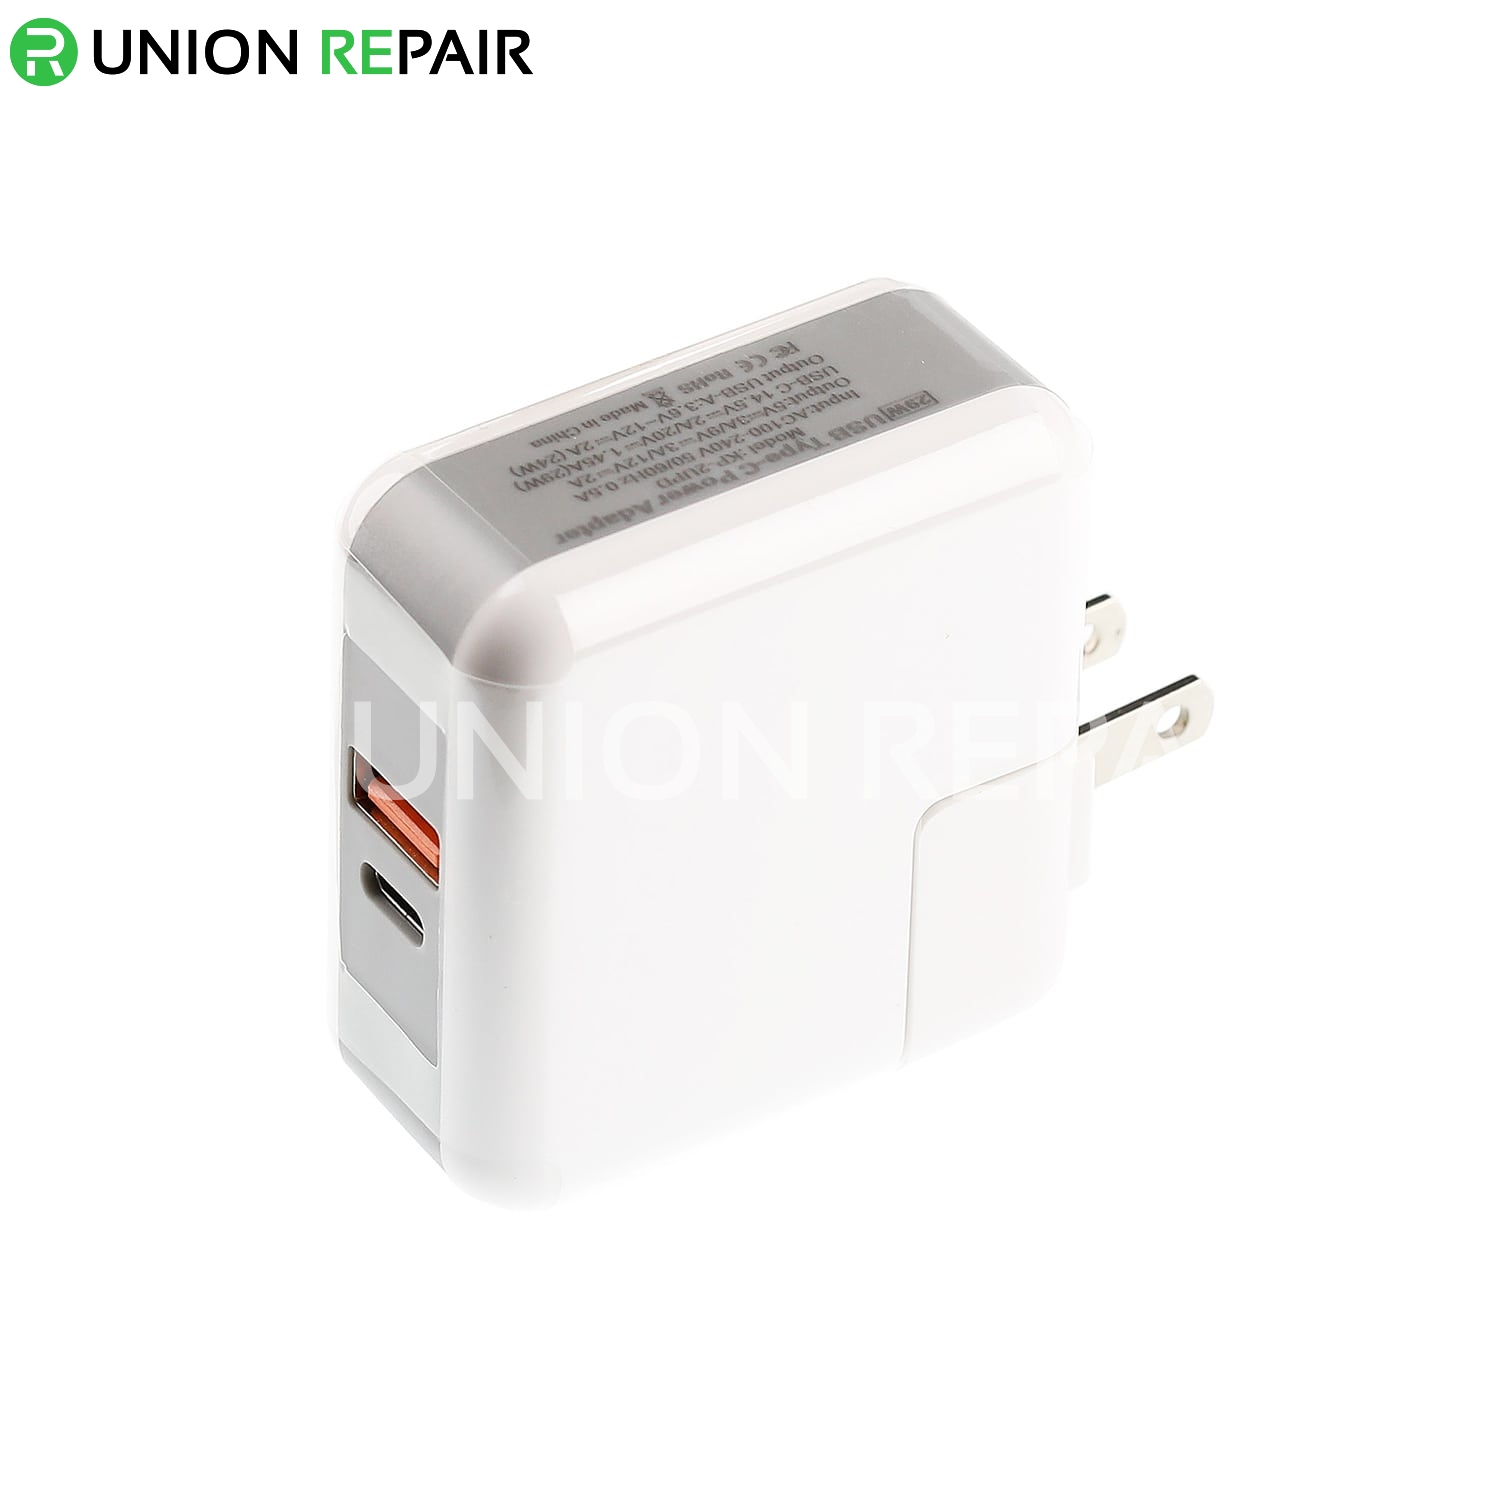 29W USB Type-C Travel Power Adapter Kit